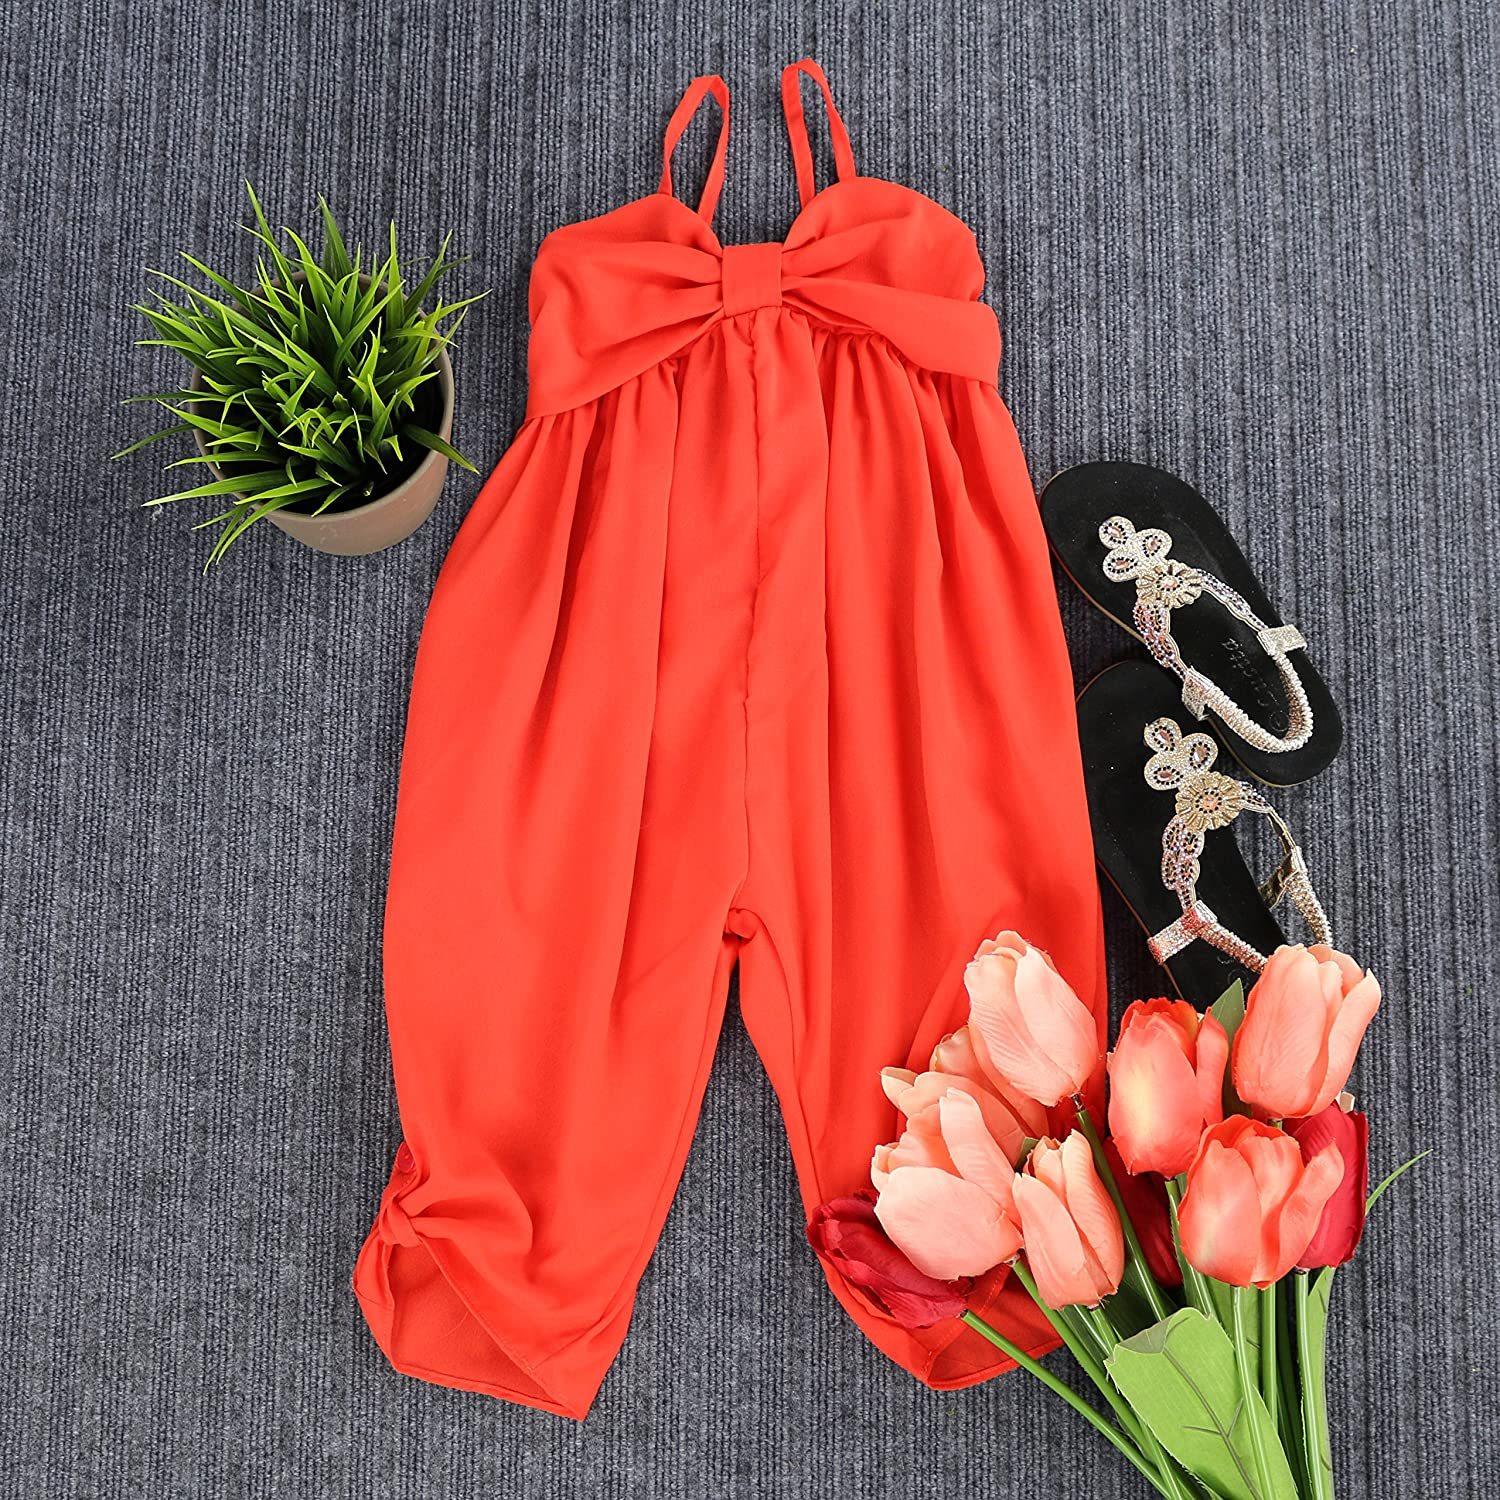 2T-7//8 Toddlers and Girls LELEFORKIDS Airy and Sheer-Chiffon Matilda Jumpsuit Lightweight